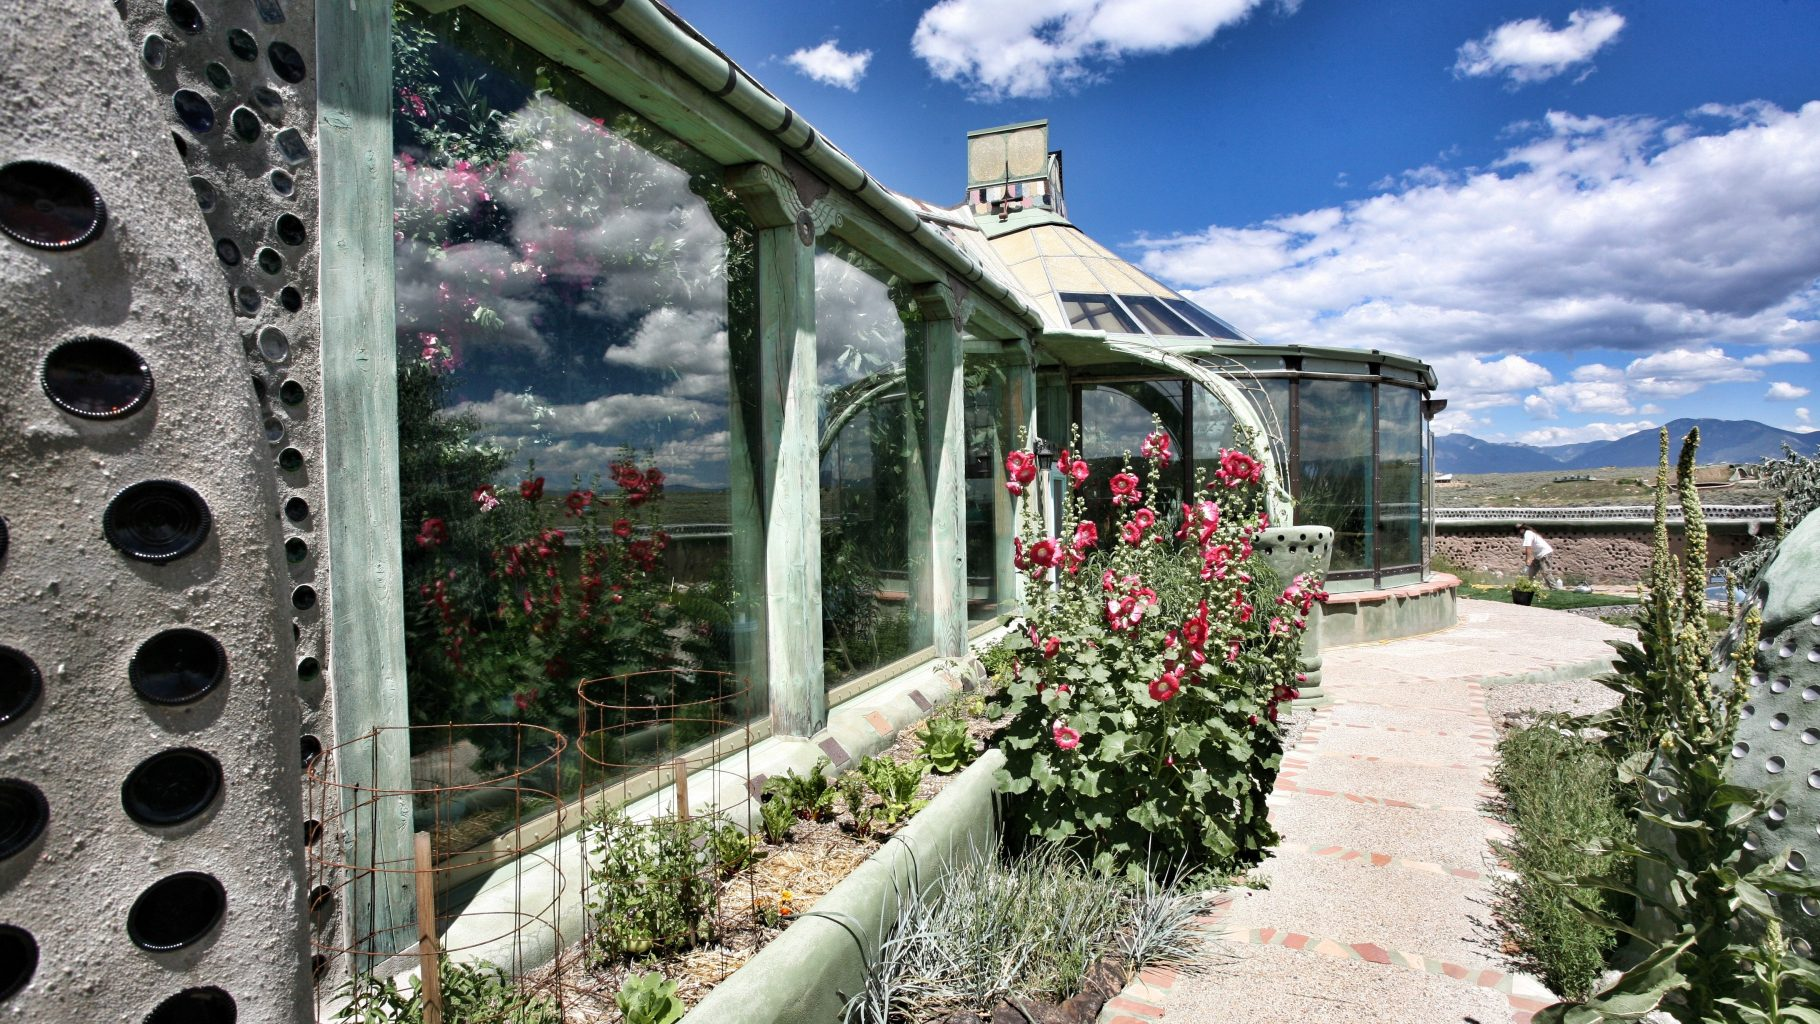 Image: View along the outside wall of an Earthship. Plants are seen growing inside and out!